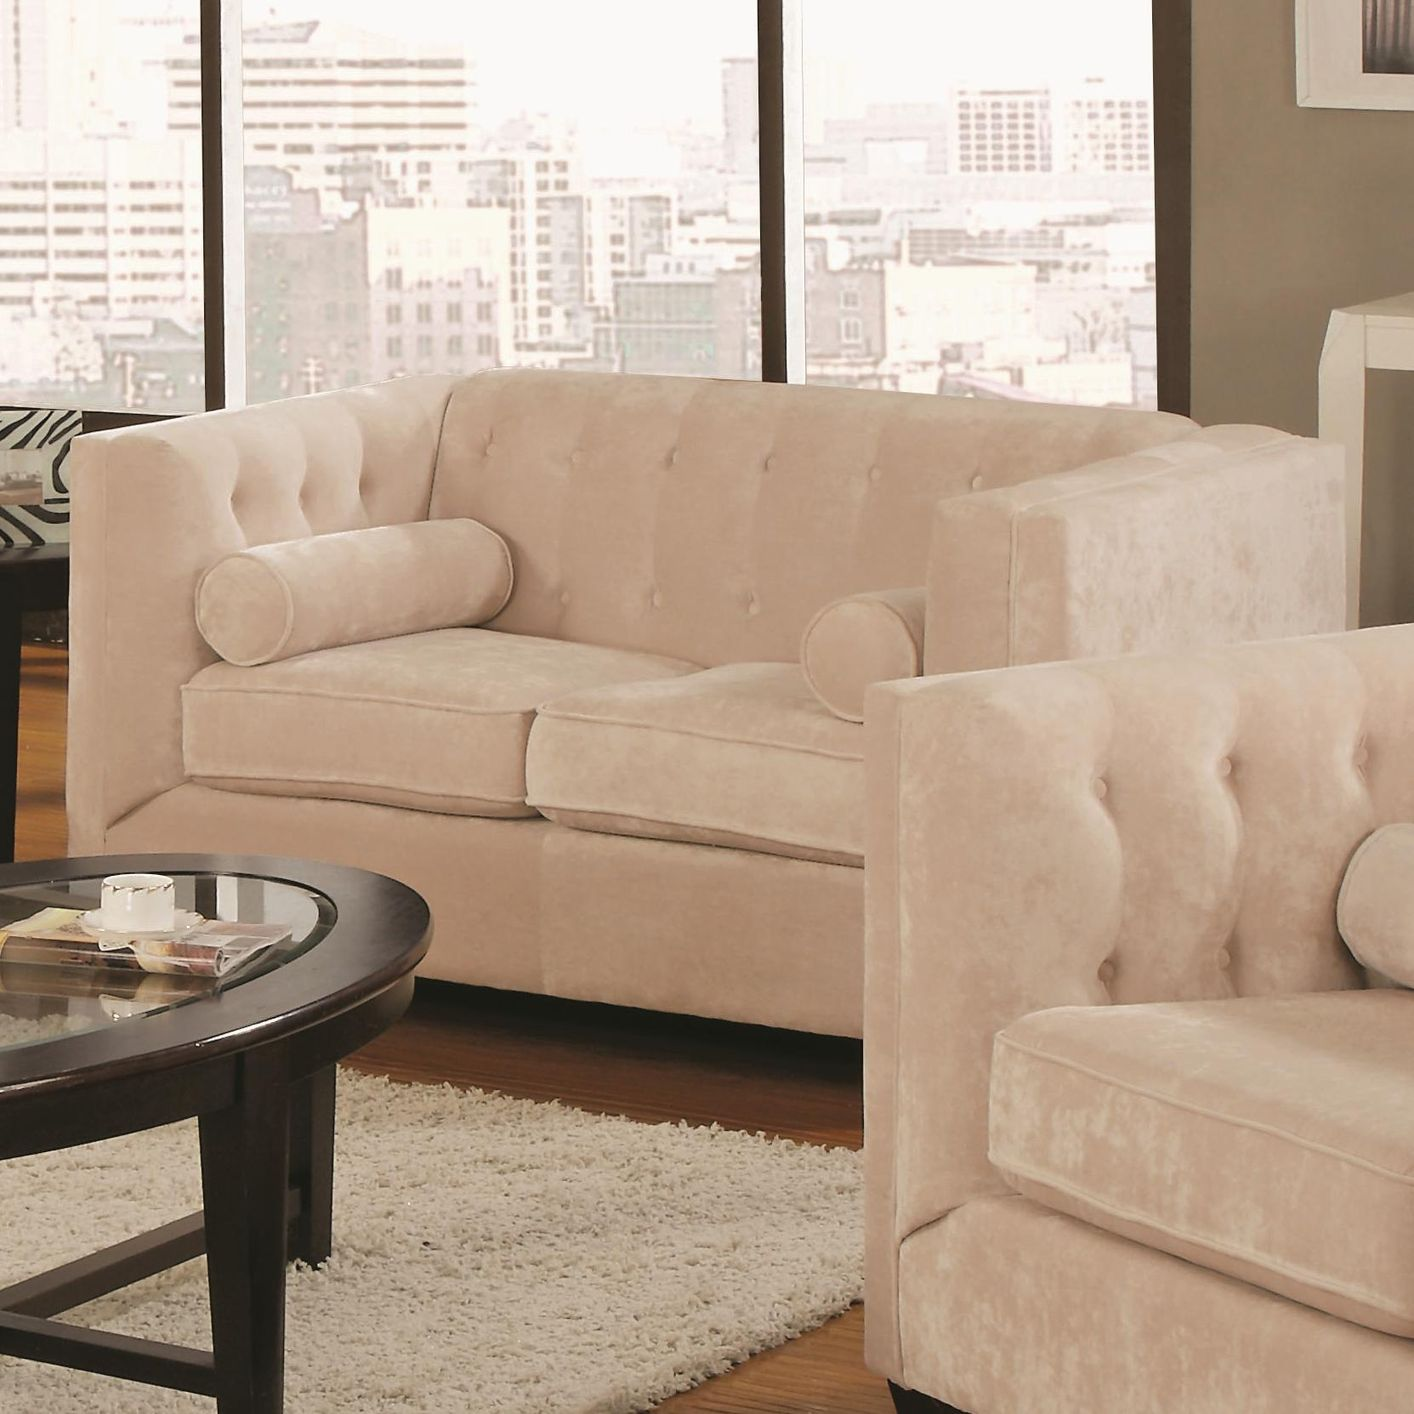 stealasofa reviews red leather sectional sofas beige fabric loveseat steal a sofa furniture outlet los